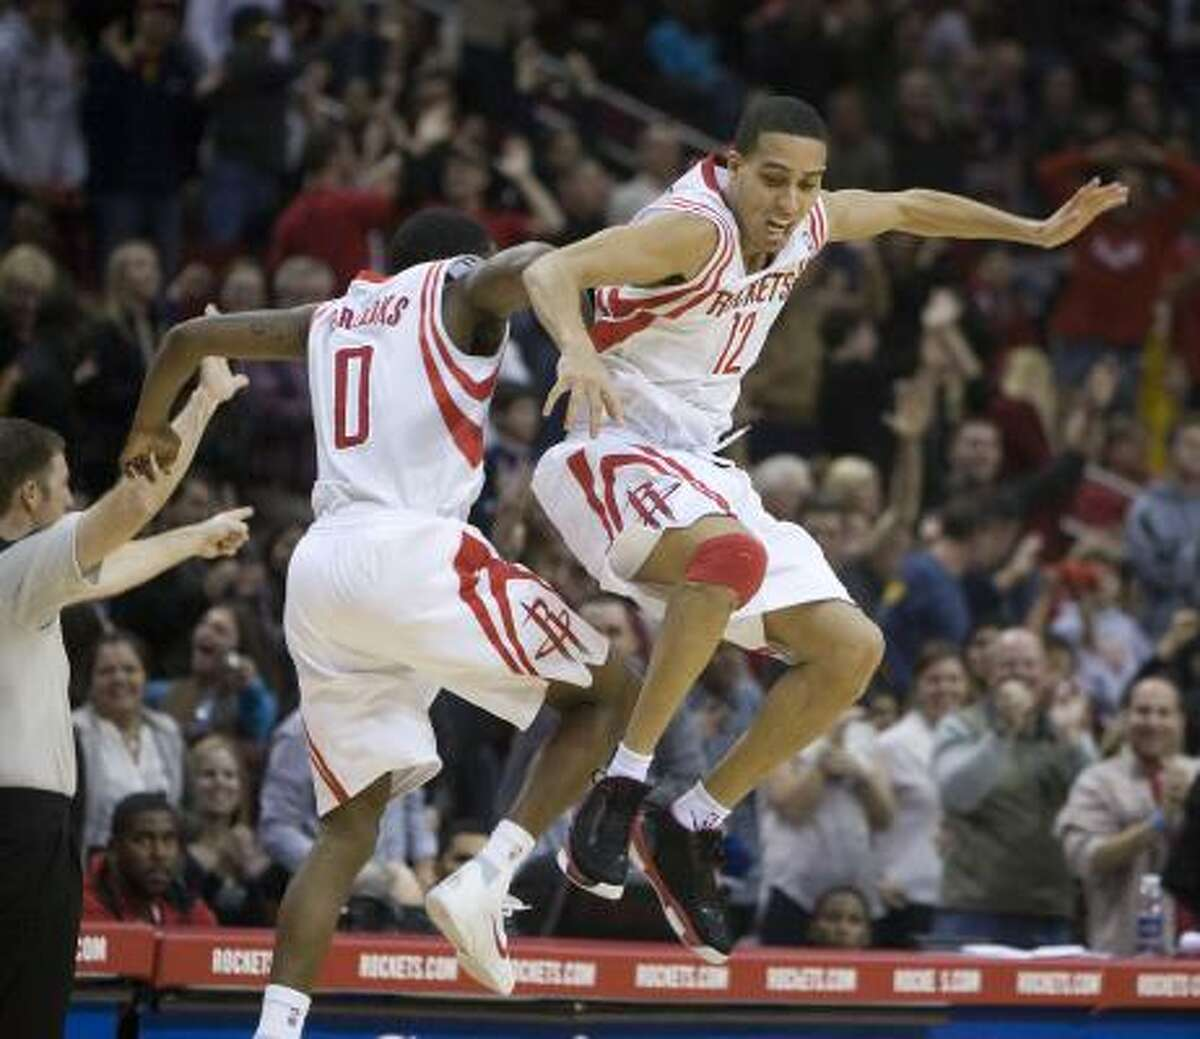 Rockets shooting guard Kevin Martin (12) and point guard Aaron Brooks (0) celebrate Martin's 3-point shot.